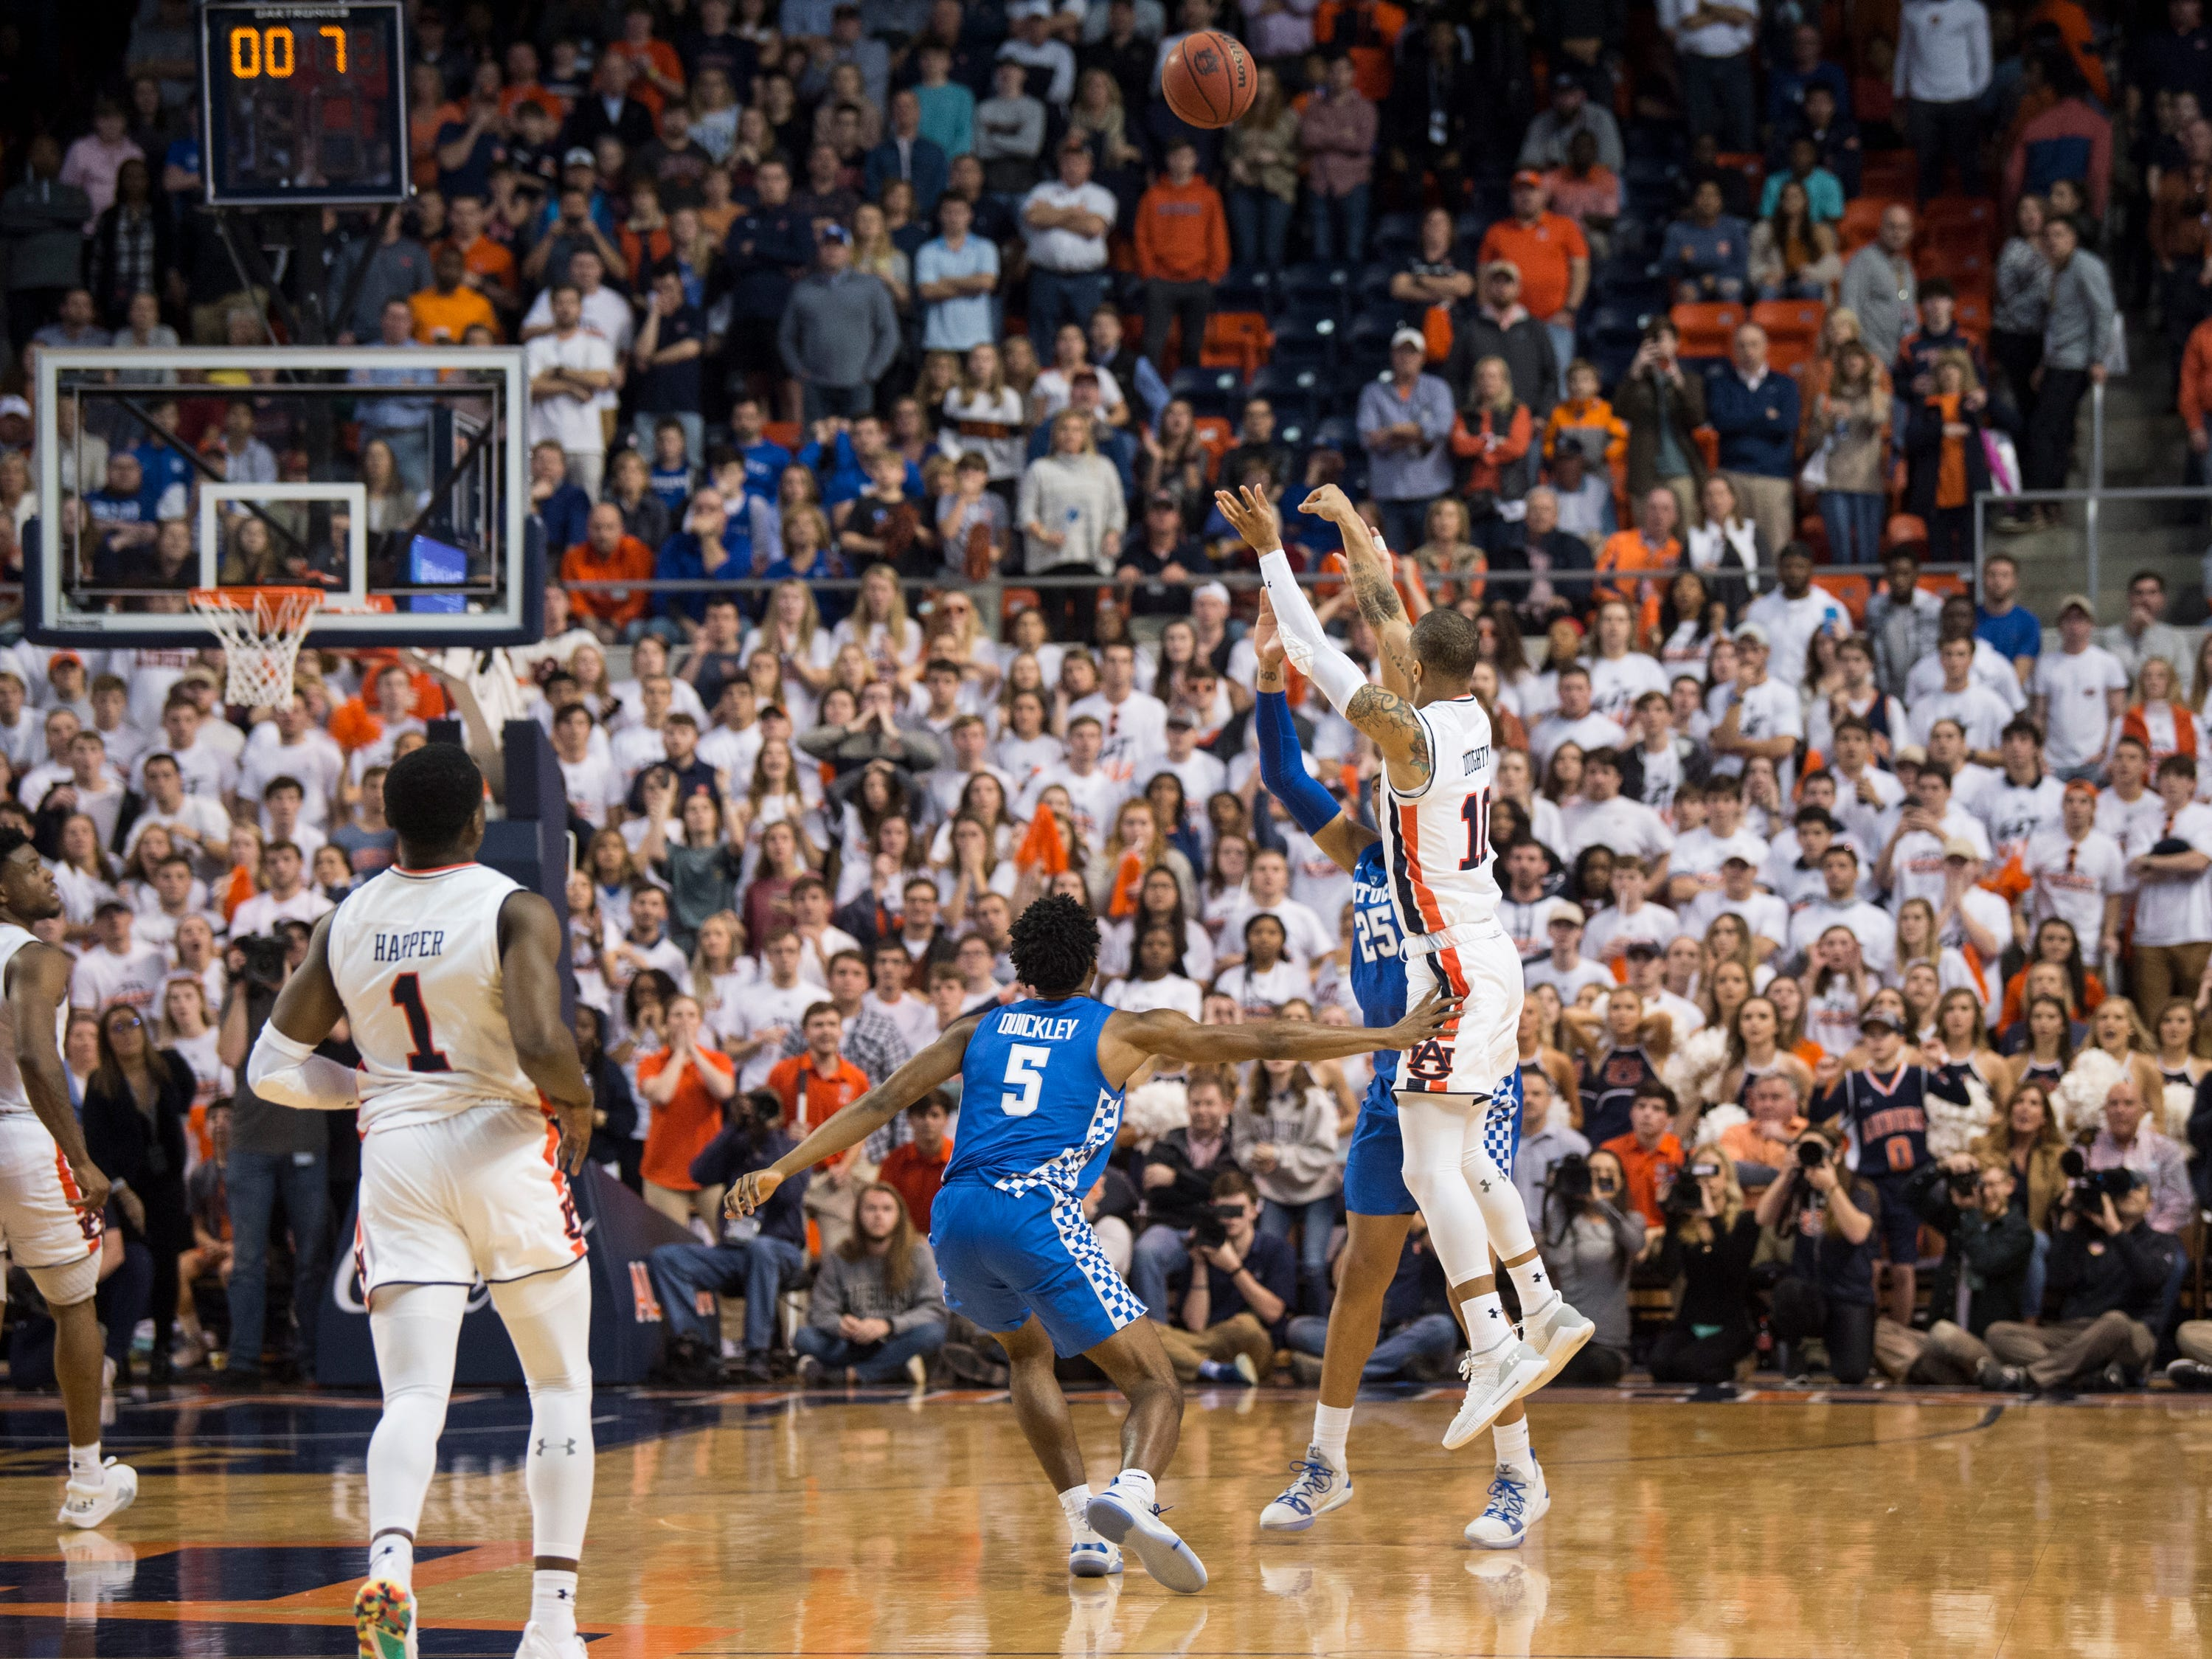 Auburn guard Samir Doughty (10) throws up a desperation half court shot in the final play of the game at Auburn Arena in Auburn, Ala., on Saturday, Jan. 19, 2019. Kentucky defeats Auburn 82-80.